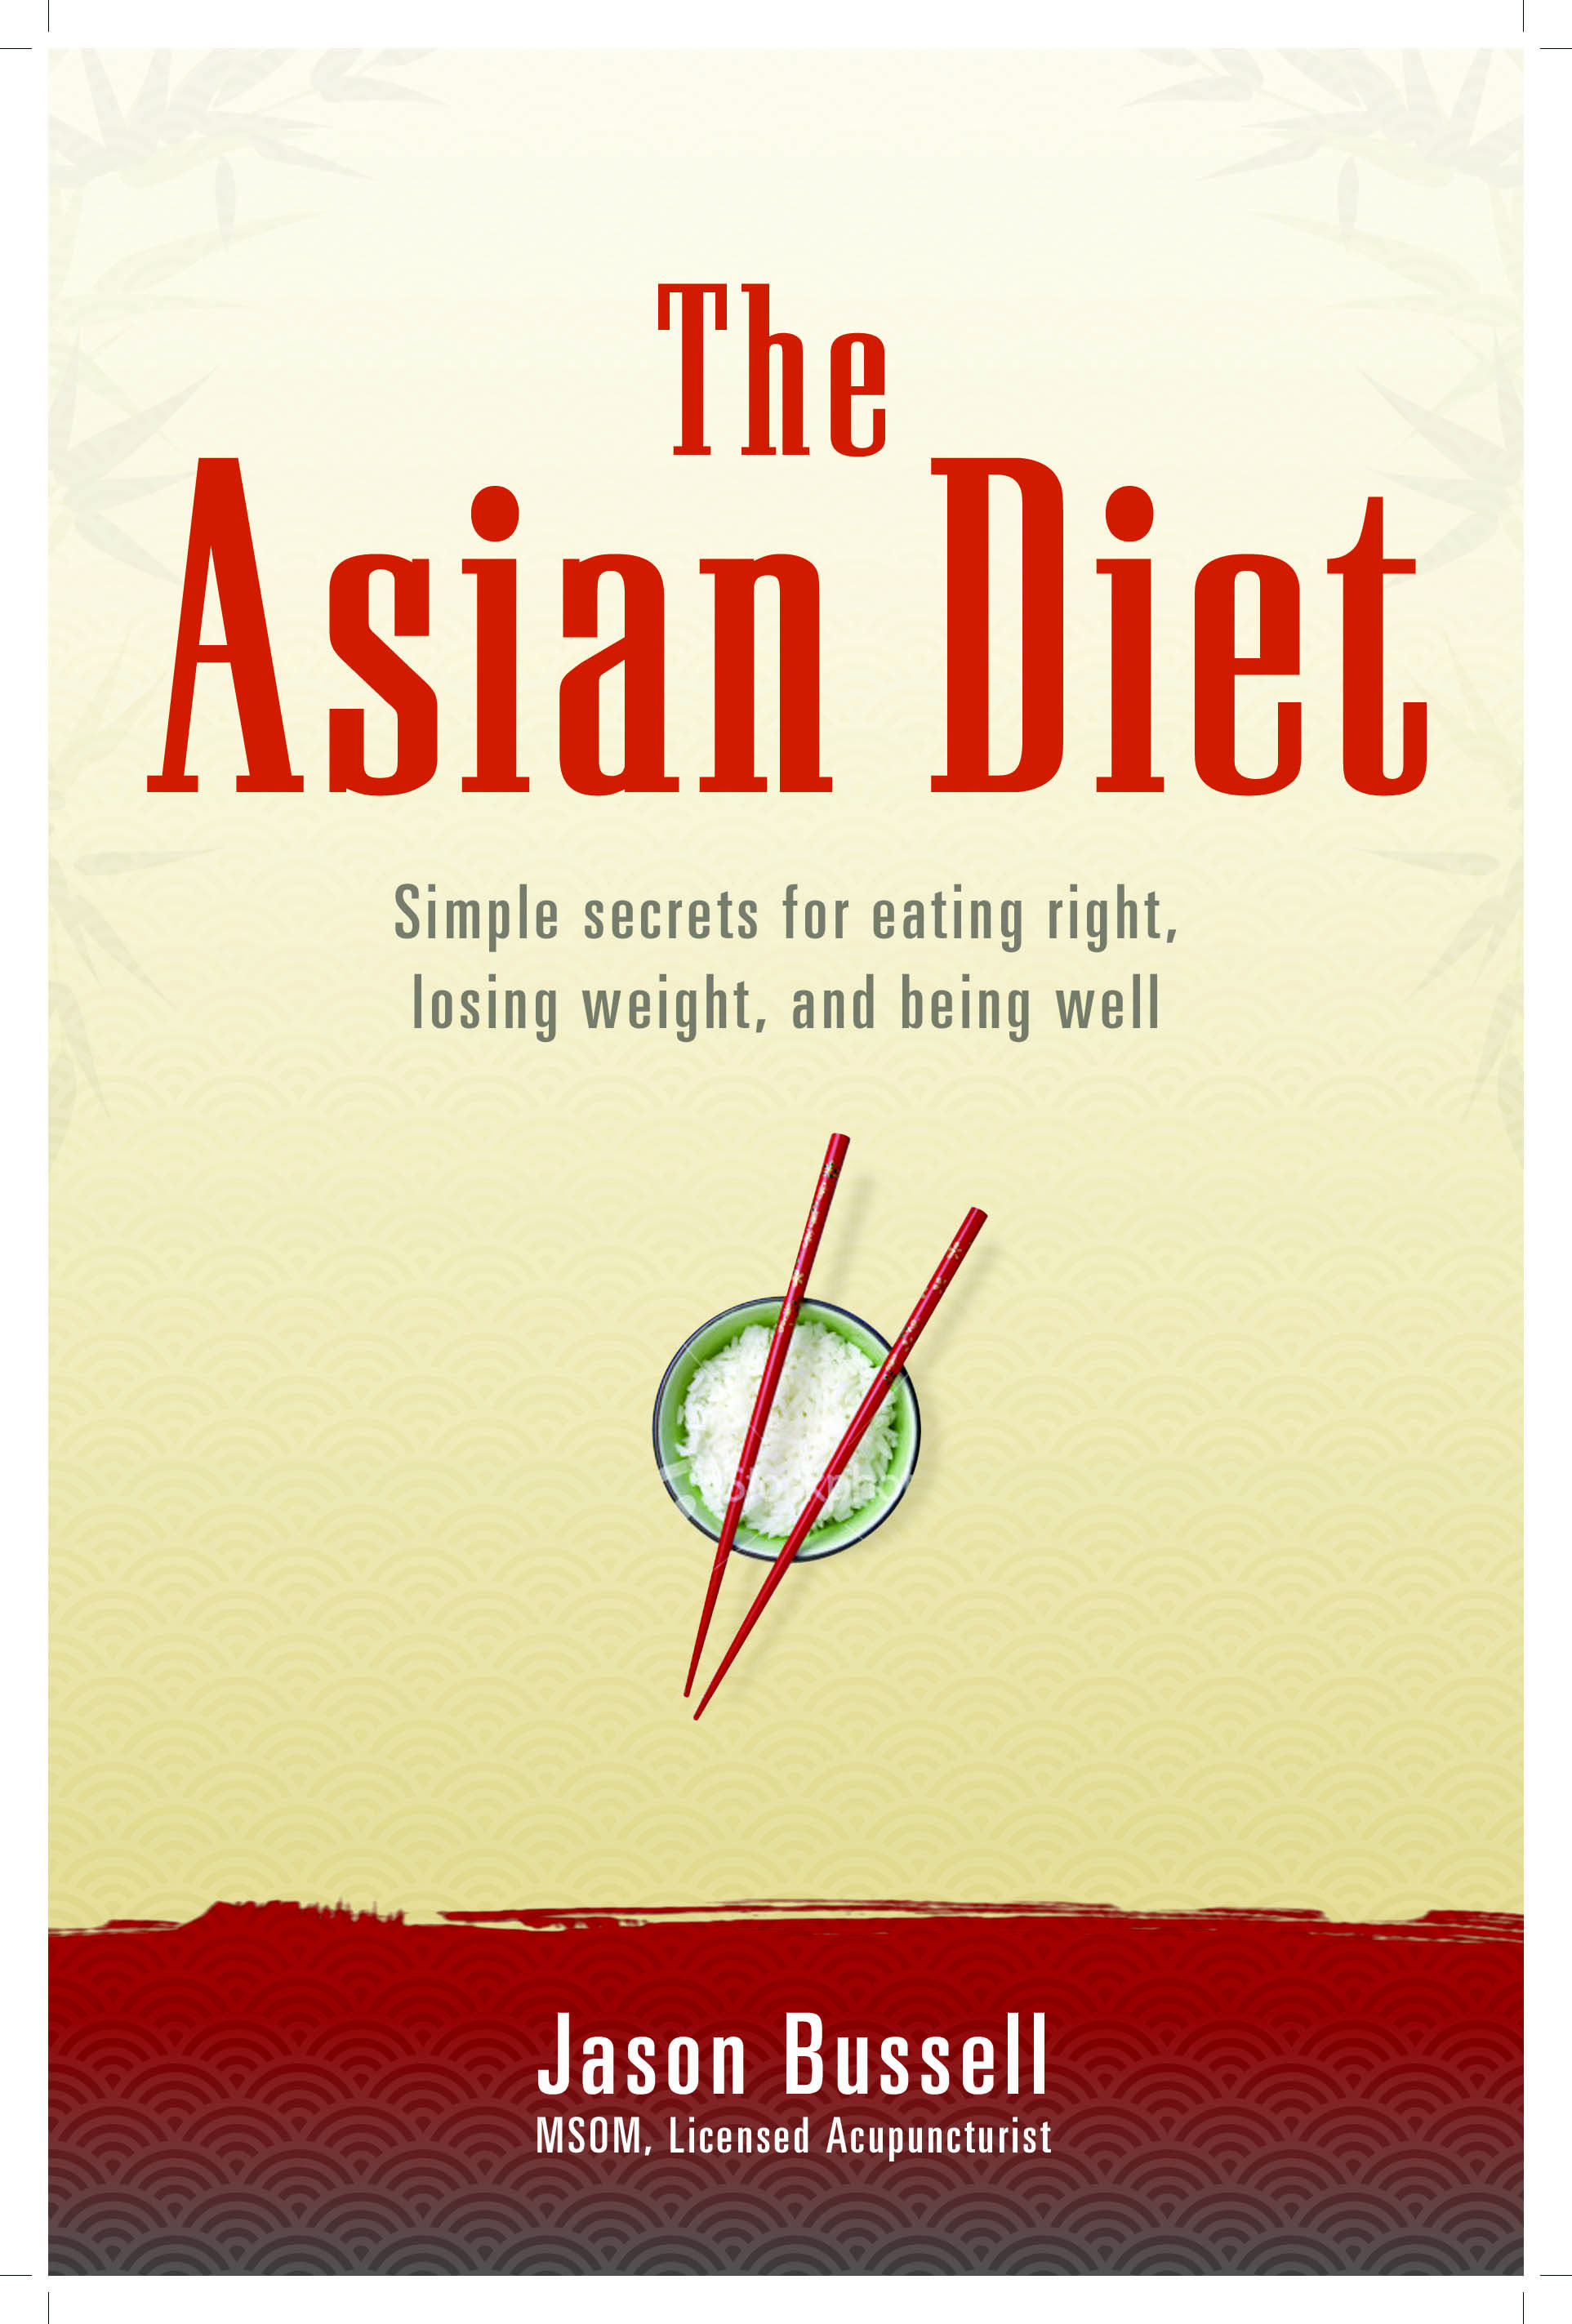 The Asian T Simple Secrets For Eating Right Losing Weight And Being Well